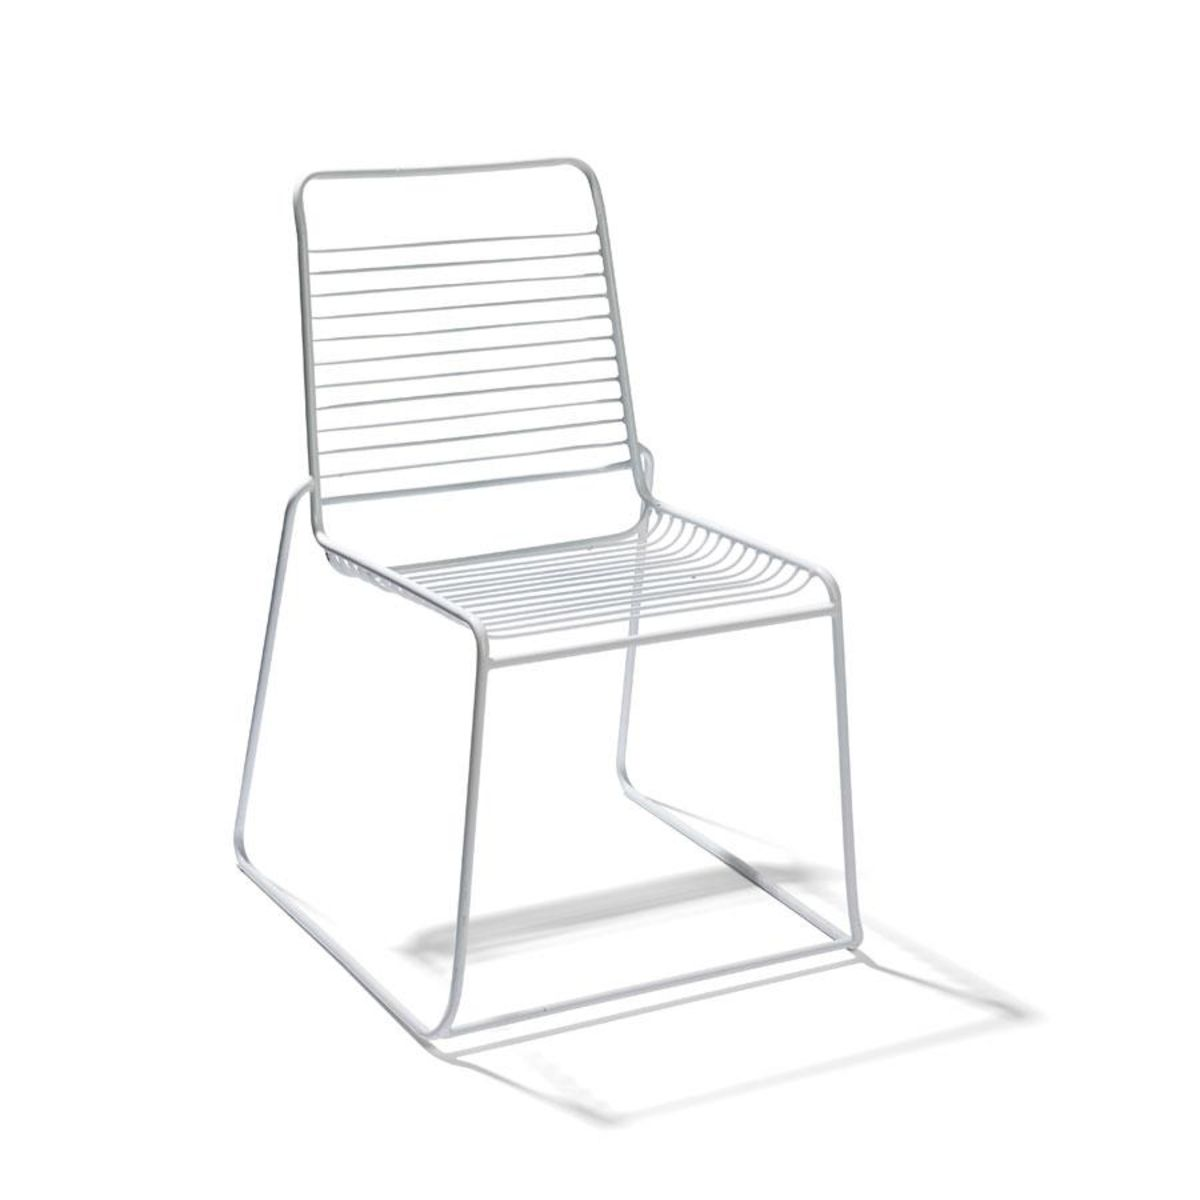 Bistro Chair - White  Kmart  Wire outdoor chairs, Outdoor chairs